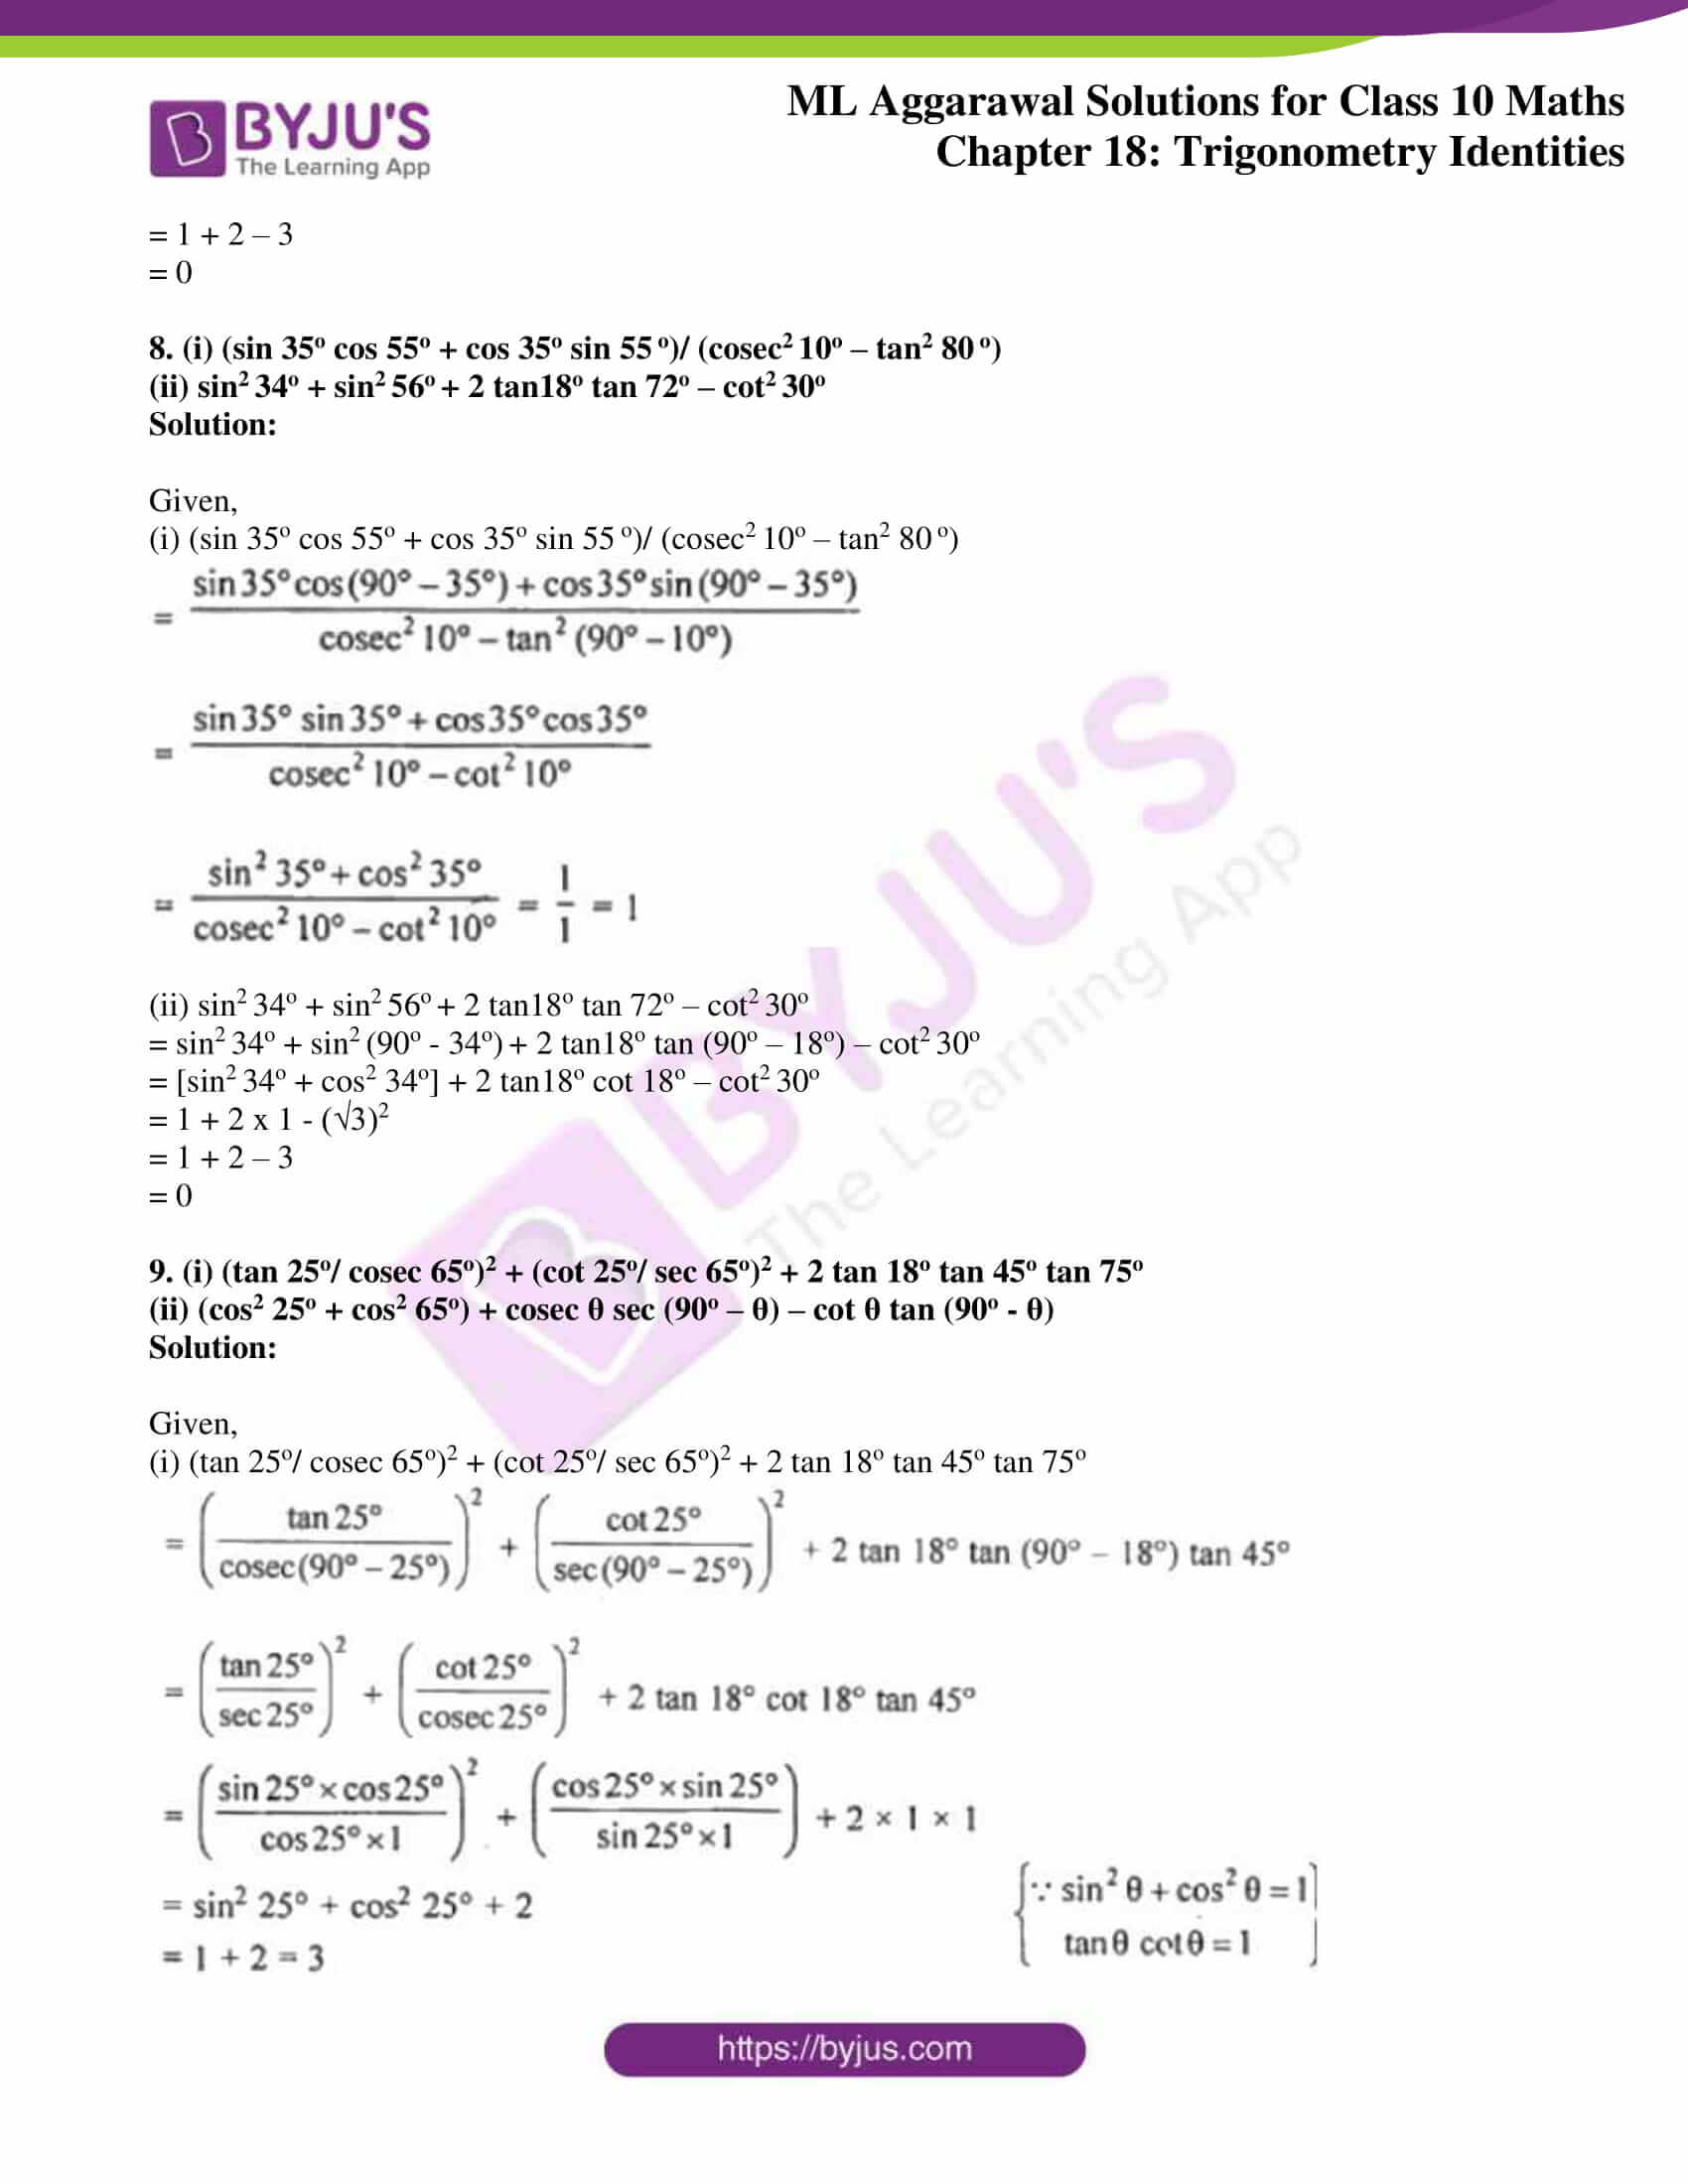 ml aggarwal solutions for class 10 maths chapter 18 04